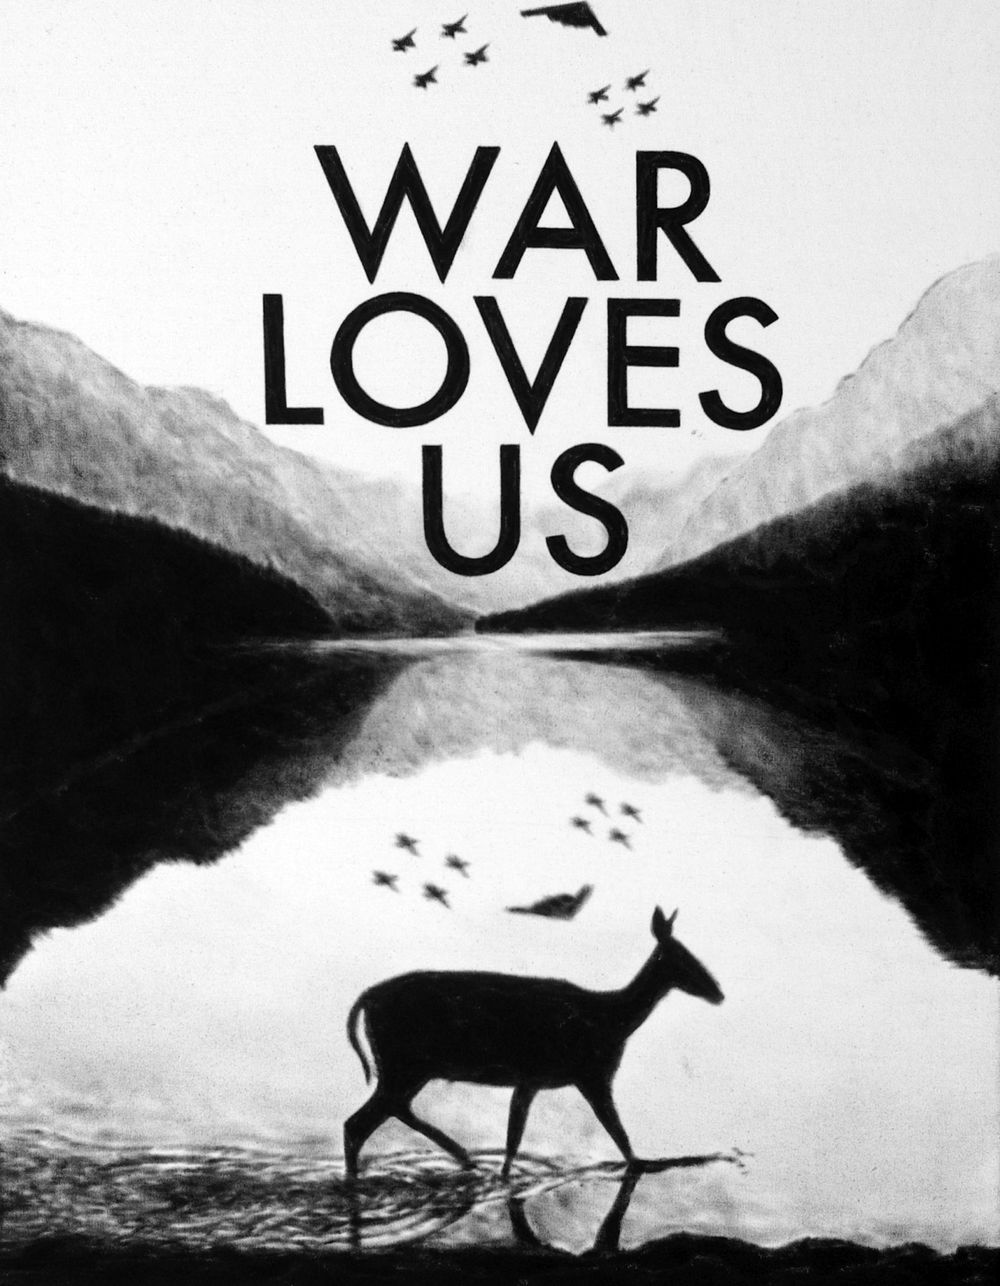 War Loves Us 03, 2016